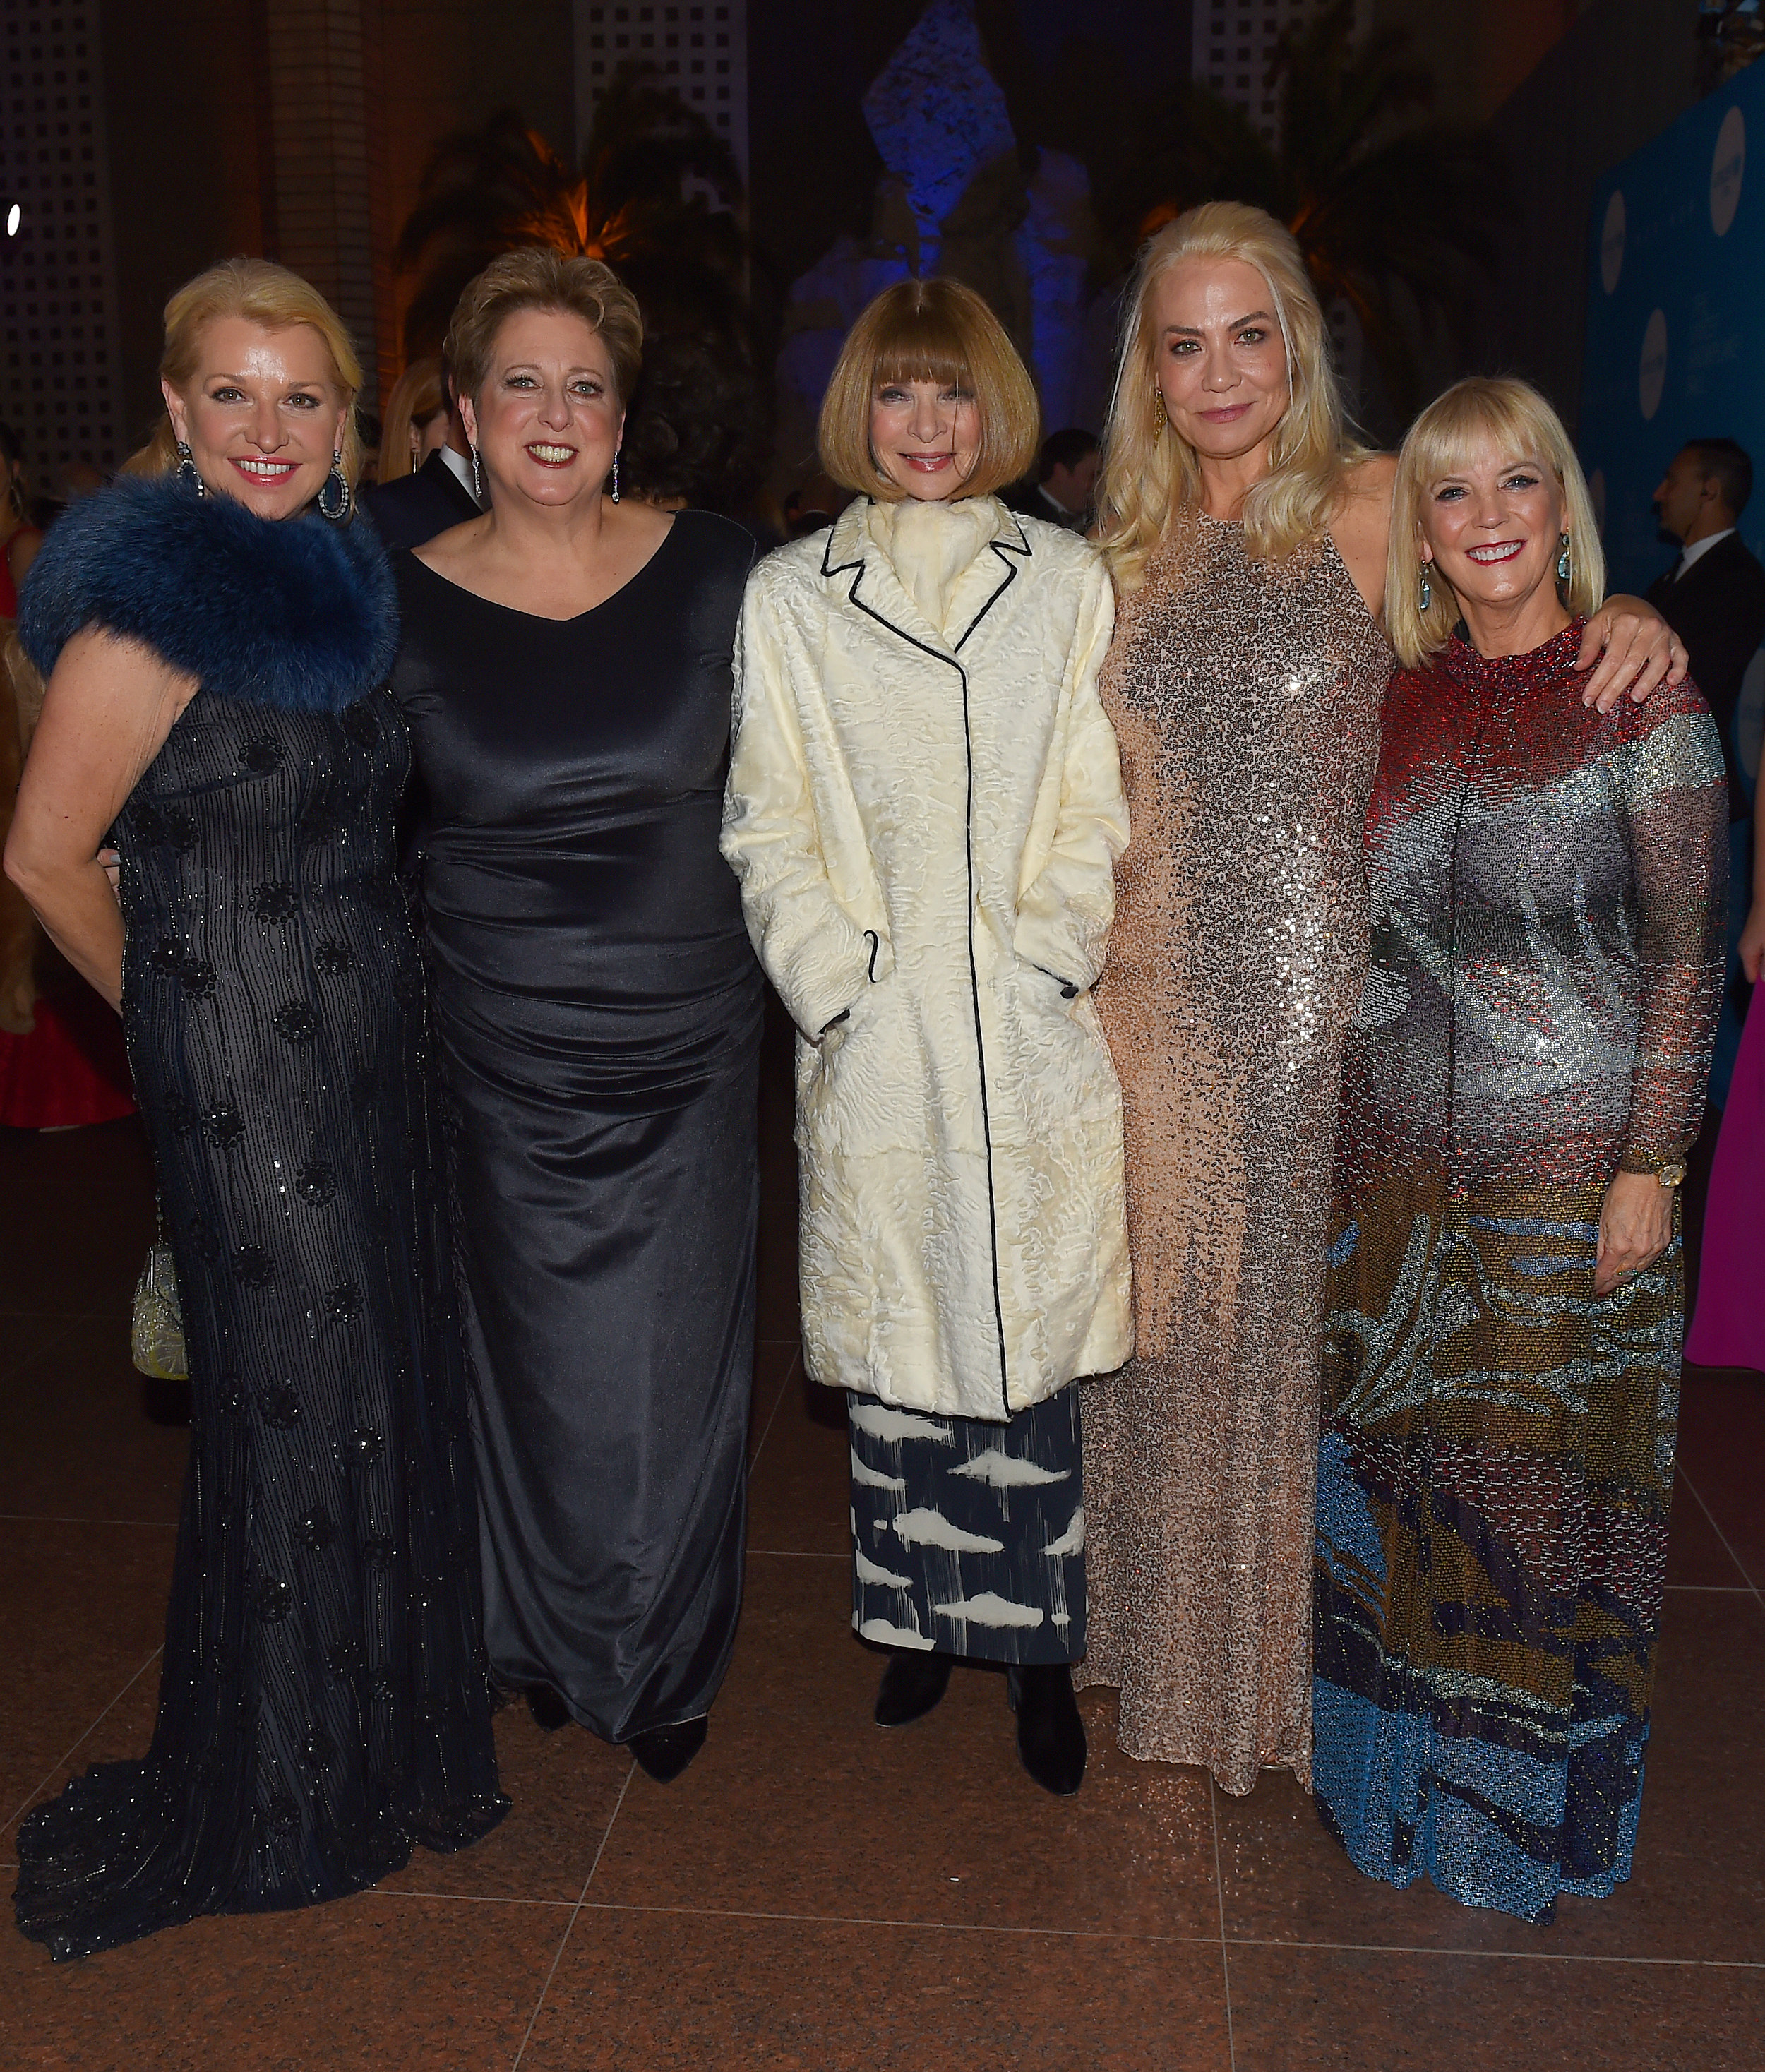 (L-R) Mindy Grossman, Caryl M. Stern, Anna Wintour, Elizabeth Smith, and Carol J. Hamilton attend 13th Annual UNICEF Snowflake Ball 2017 at 60 Wall Street Atrium on November 28, 2017 in New York City. (Photo by Nicholas Hunt/Getty Images for UNICEF)